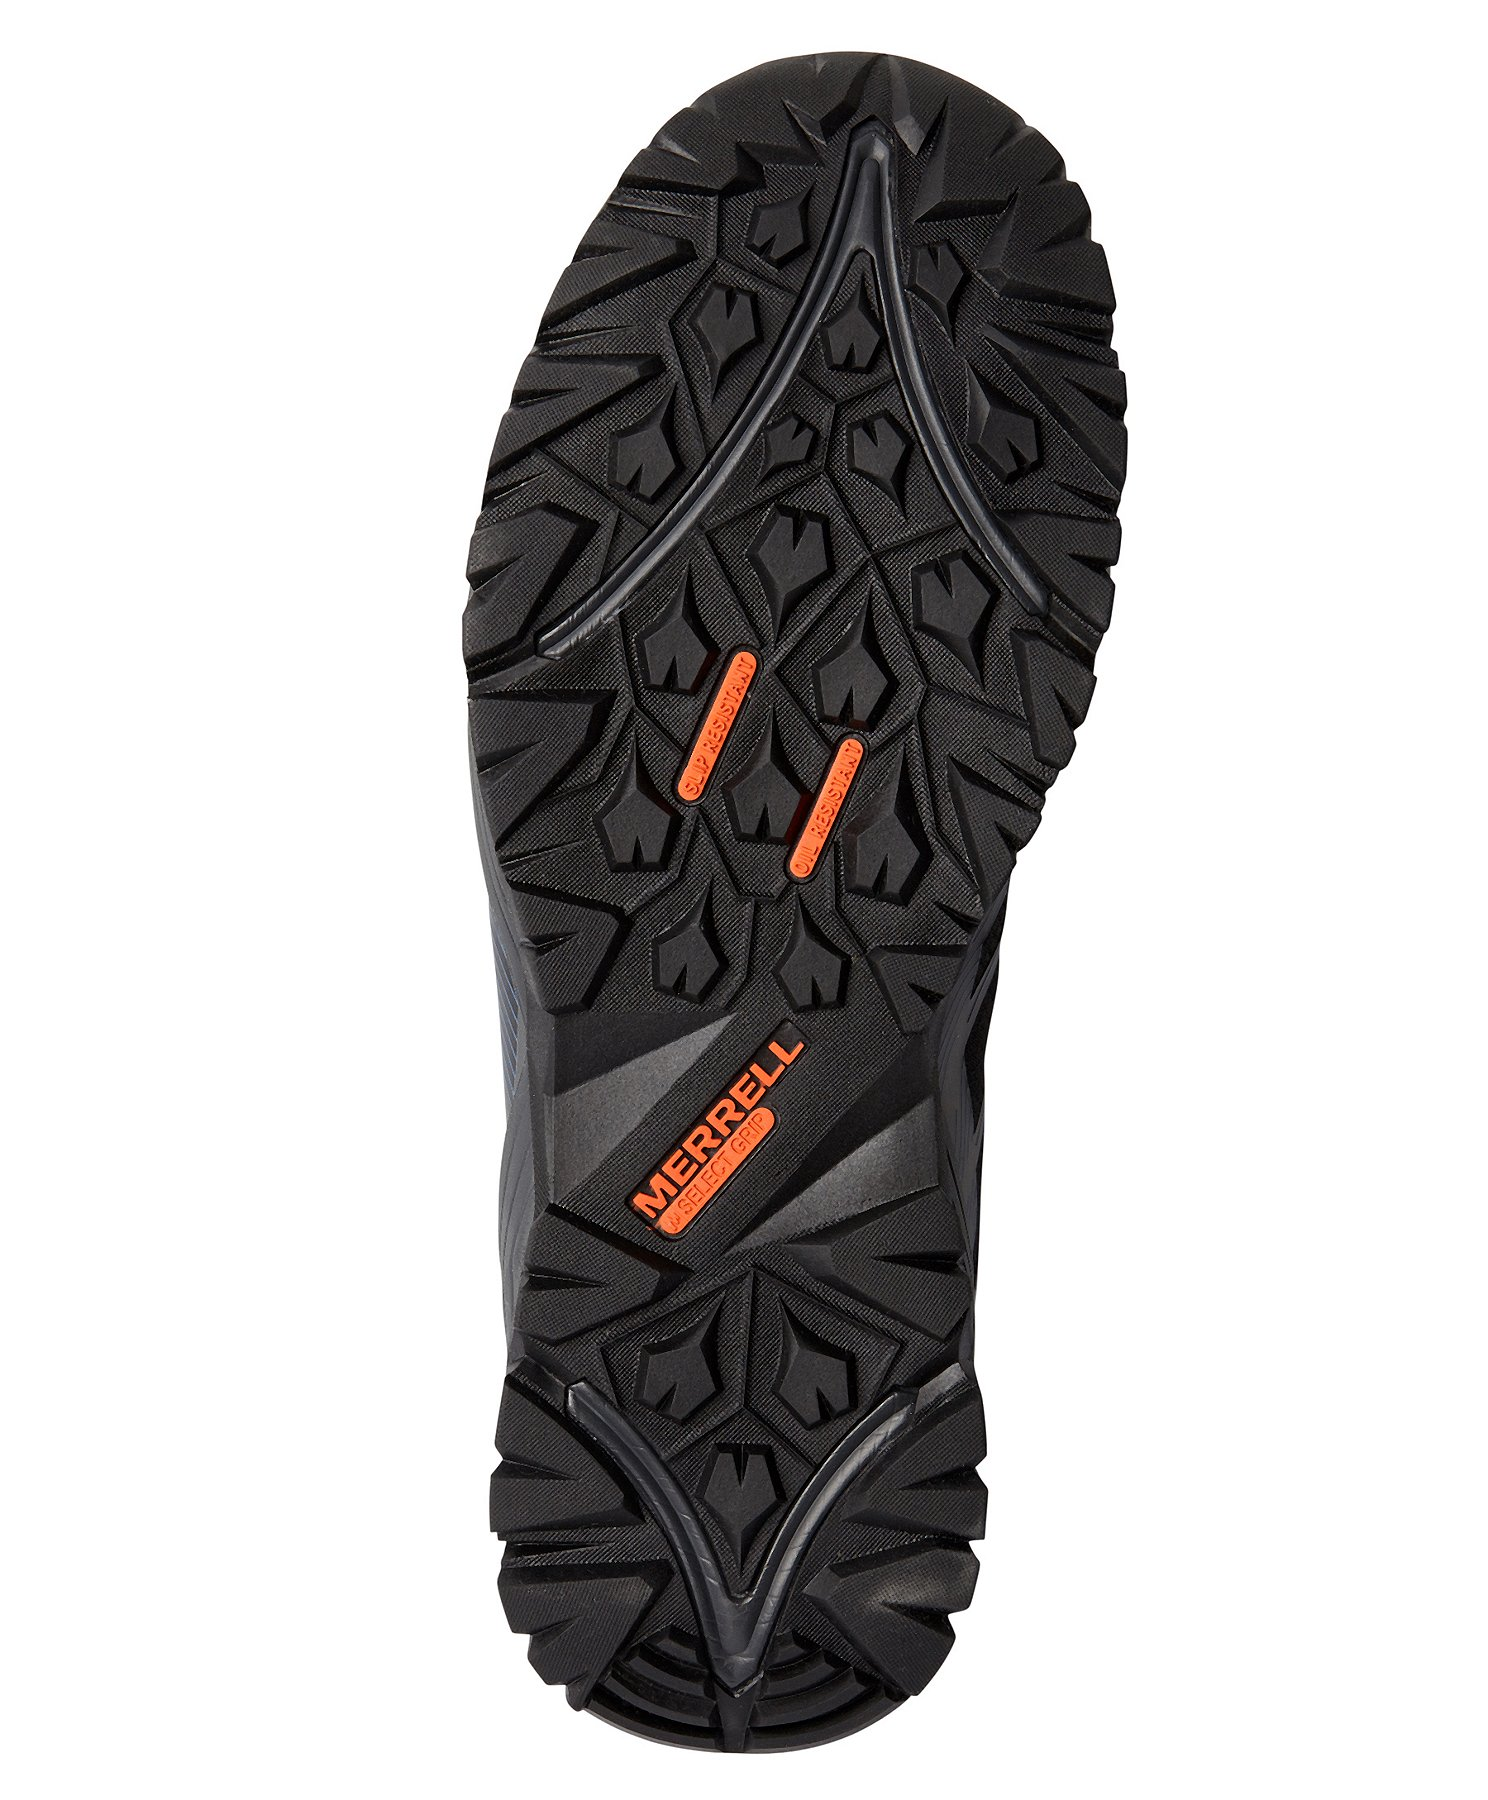 Men's Work Full Bench Composite Toe Composite Plate CSA Safety Hiking Shoes